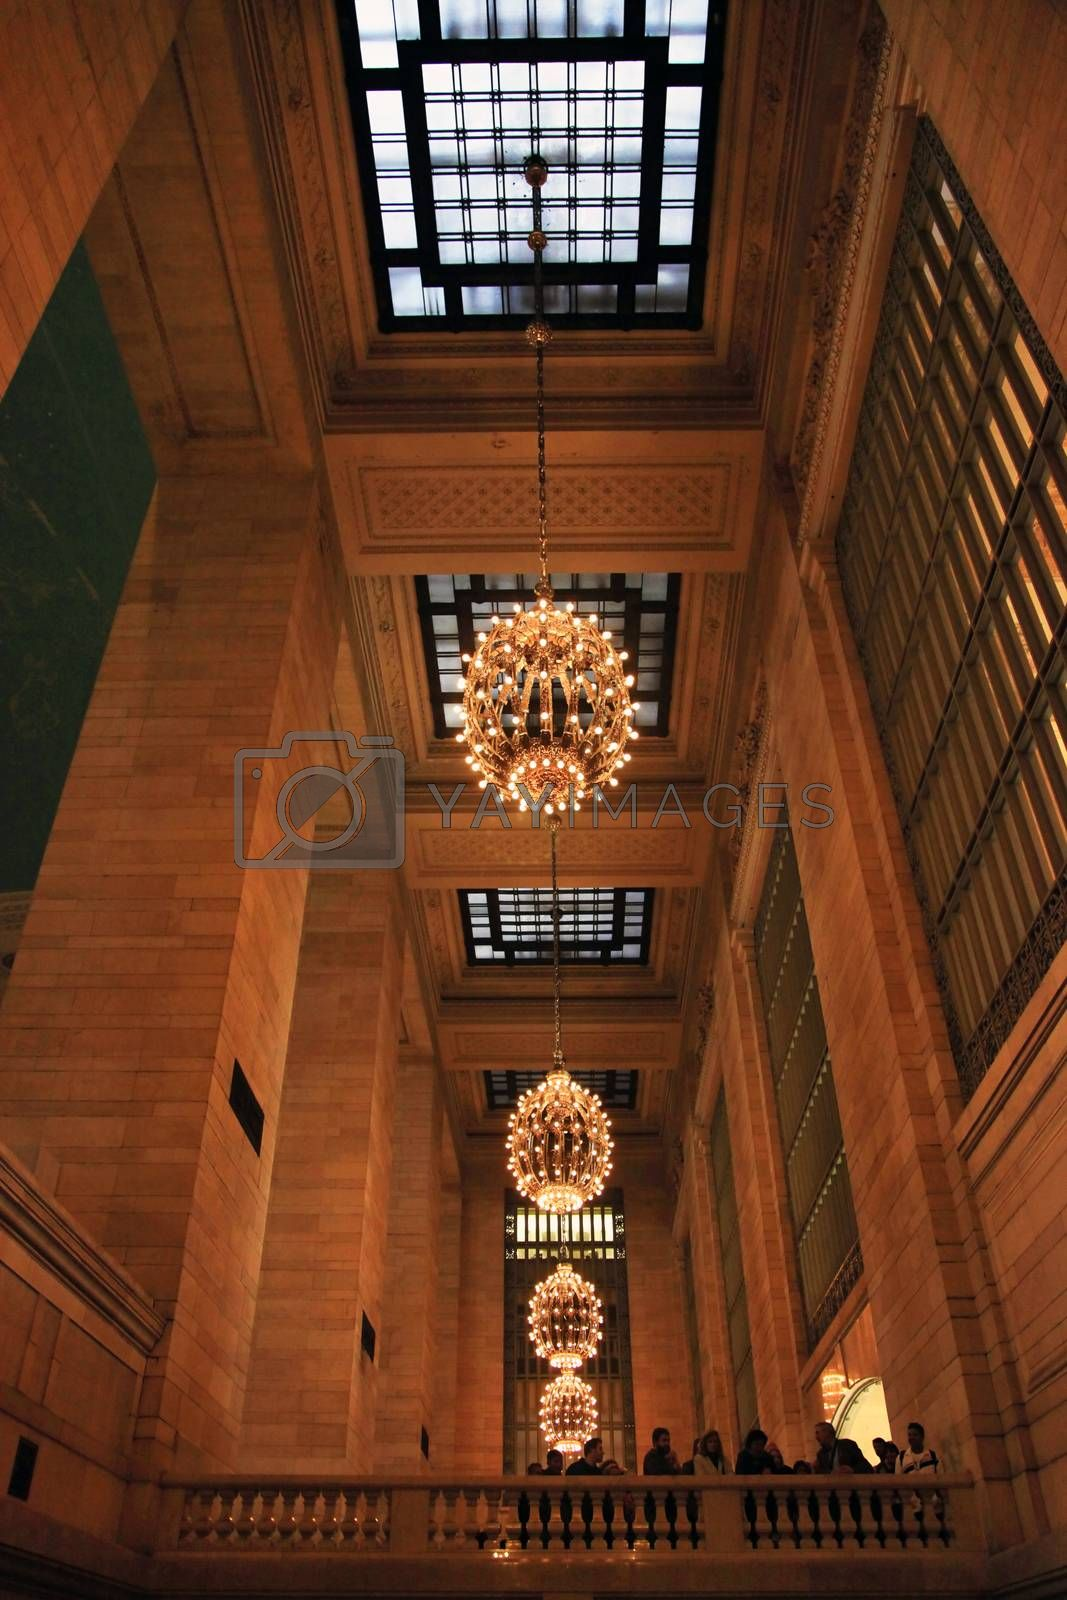 New York , USA - October, 12, 2012: Interior of Grand Central Station in New York. The terminal is the largest train station in the world by number of platforms having 44 in New York 12 October, 2012